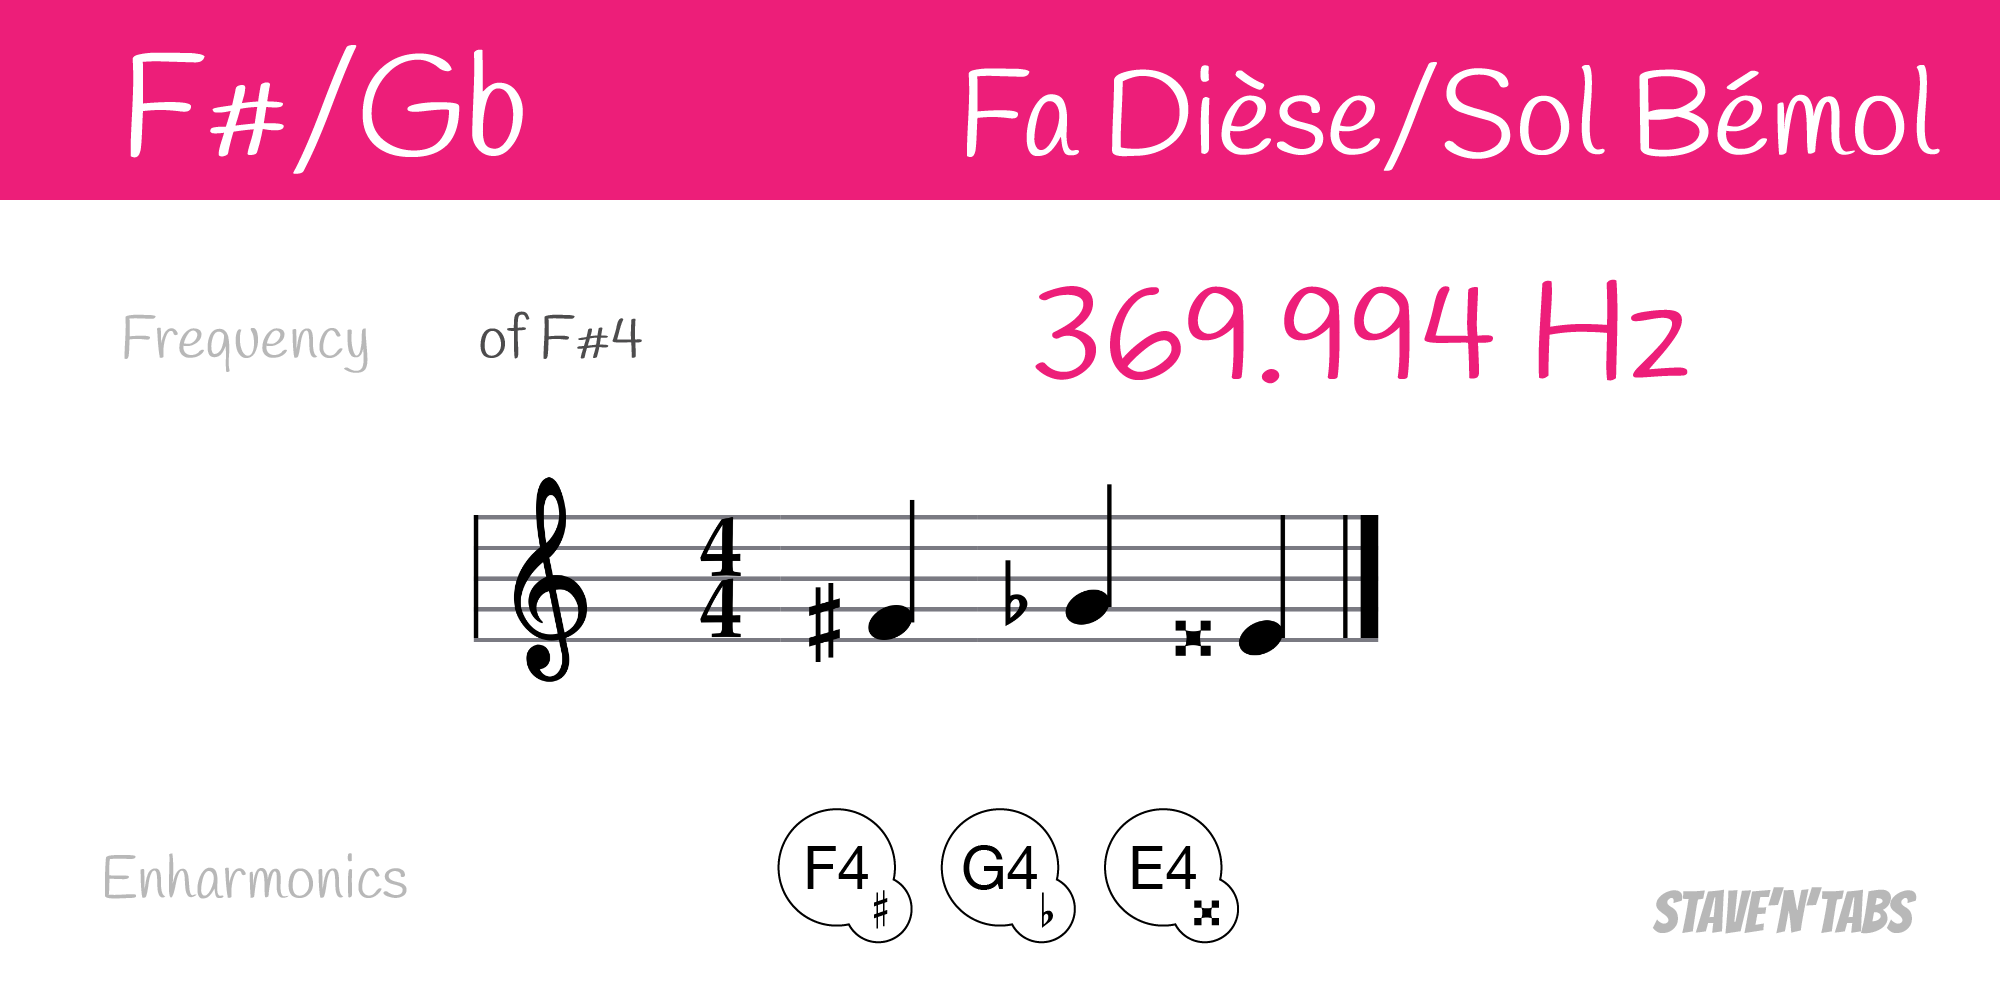 Enharmonic equivalents for the note F#